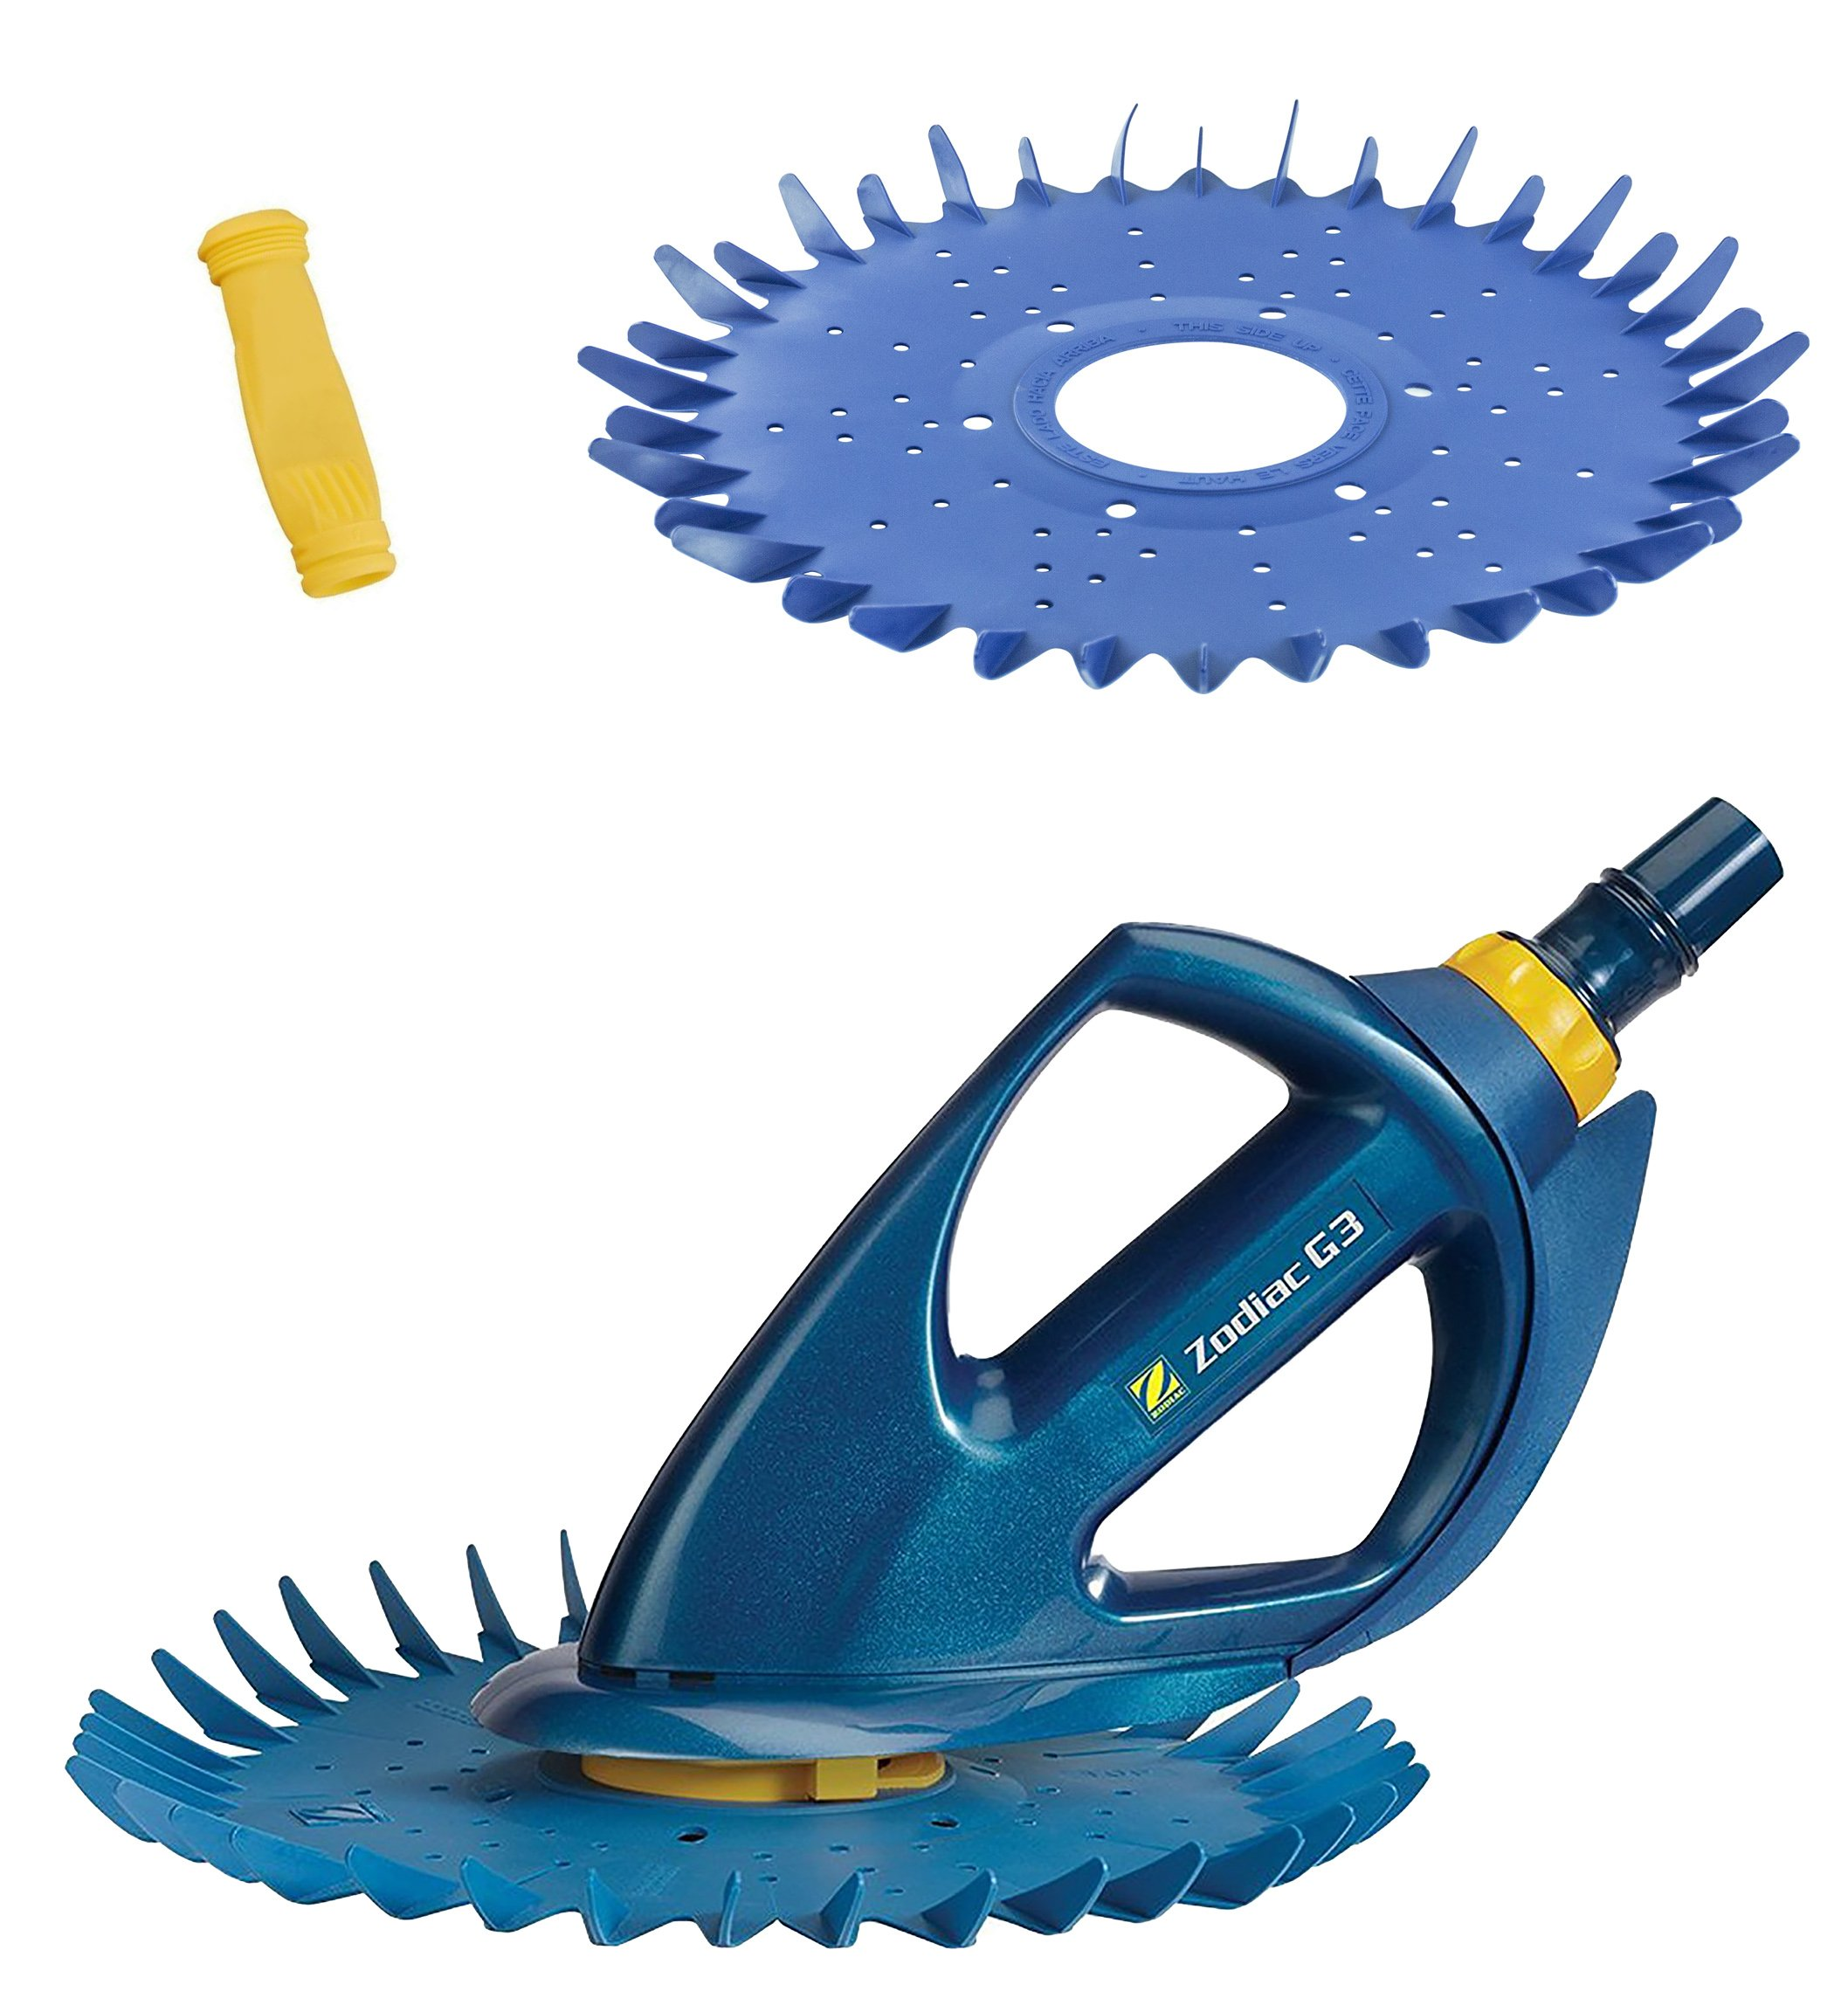 BARACUDA G3 W03000 Advanced Suction Side Automatic Pool Cleaner with Additional Diaphragm and Finned Disc by Zodiac